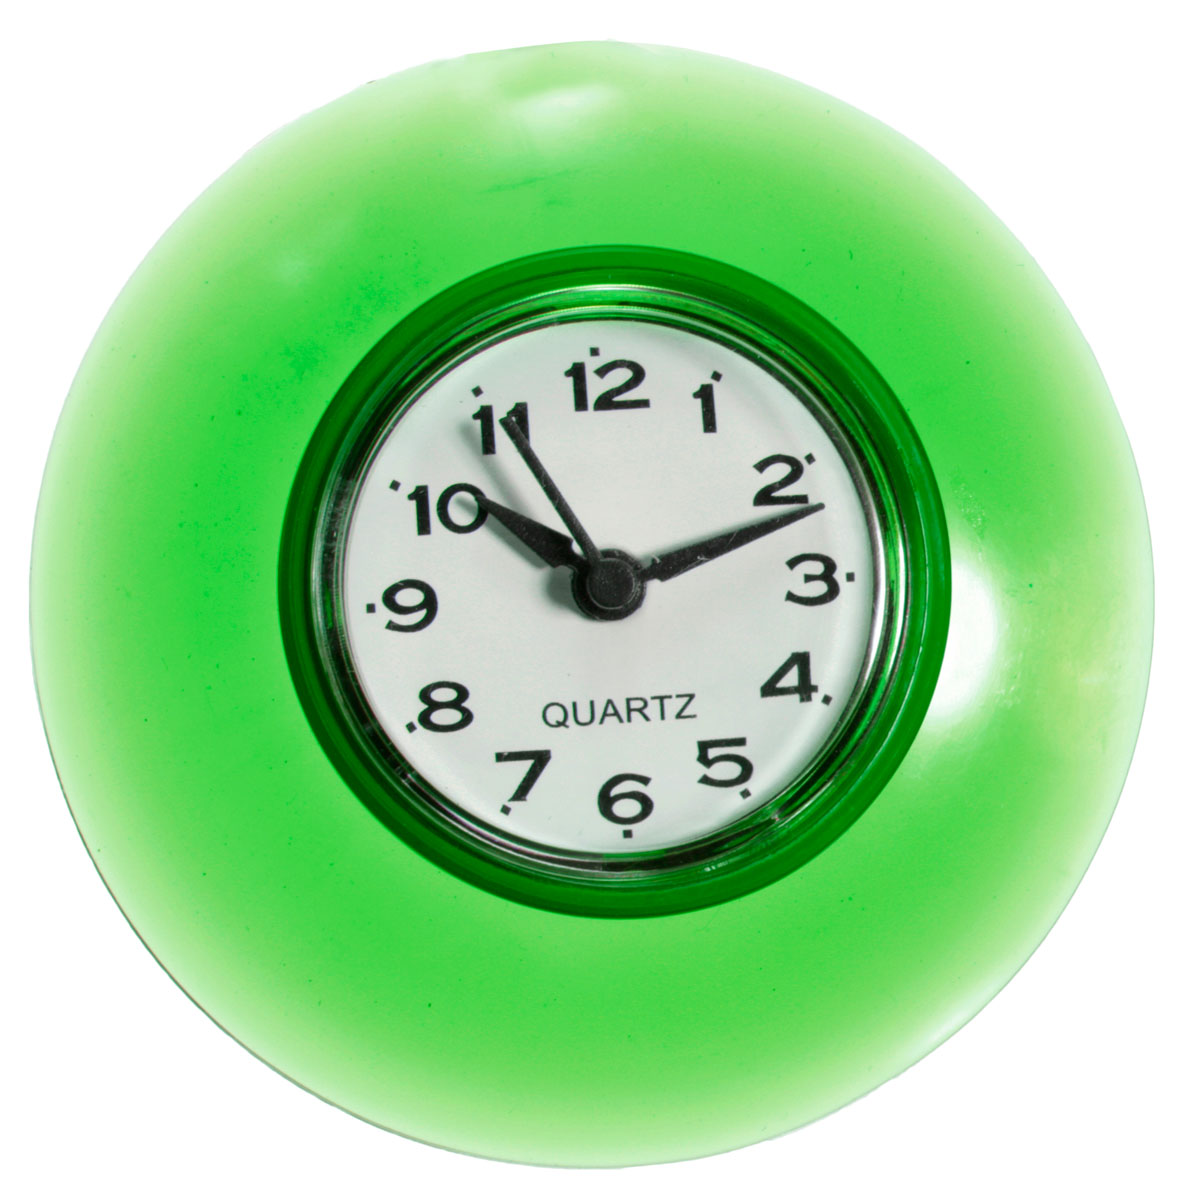 Bathroom Waterproof Wall Clock Resistant Timer Suction Cup